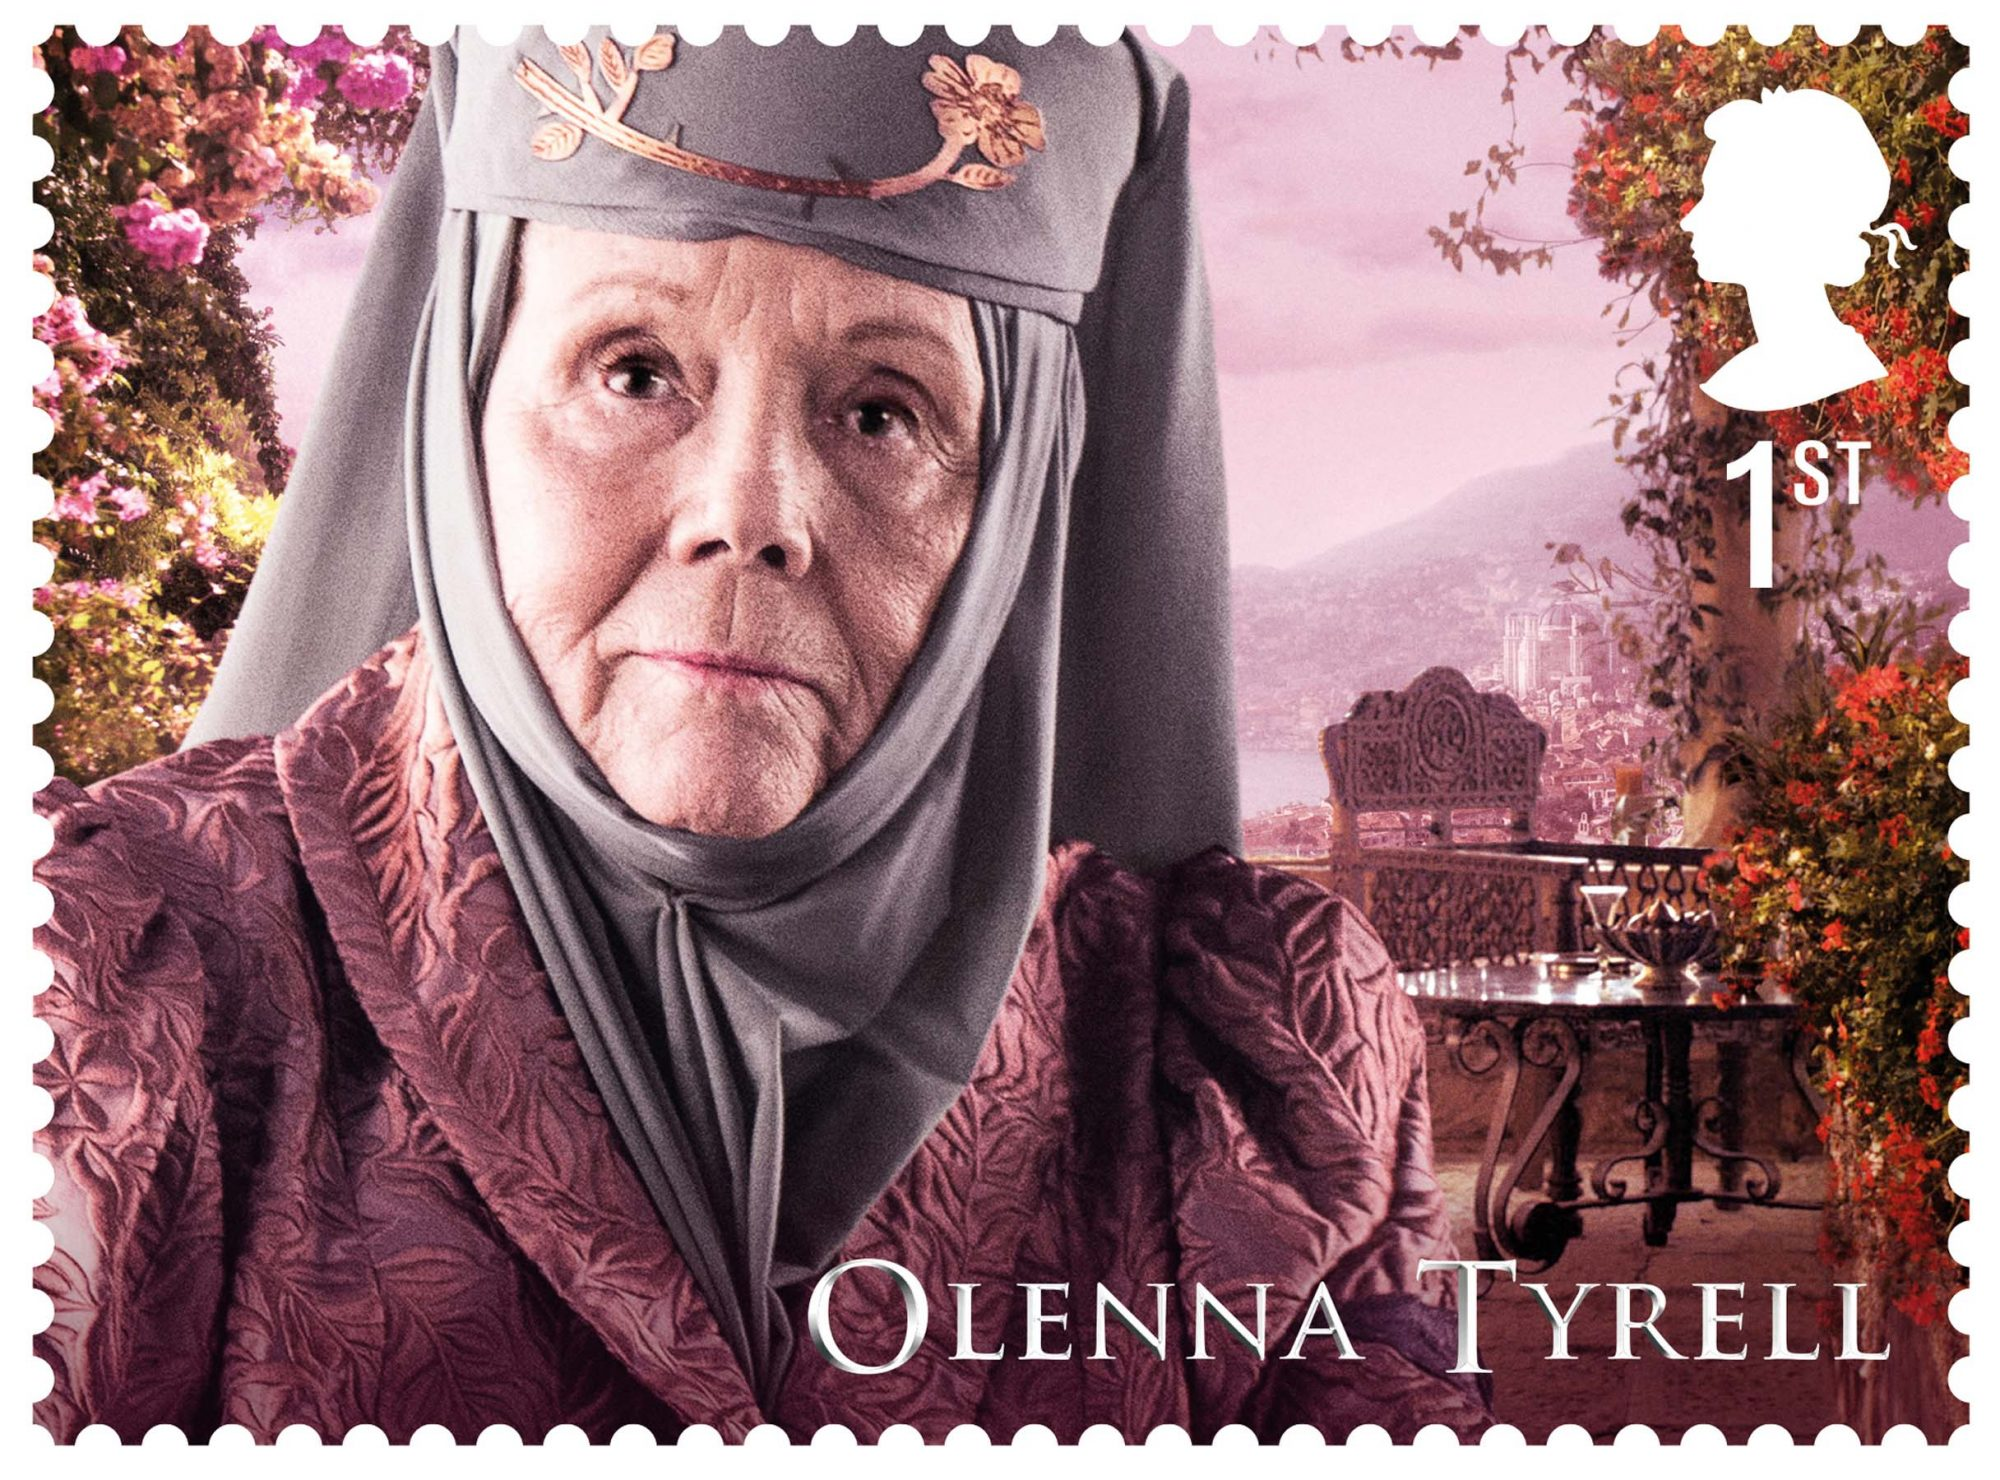 GoT Olenna Tyrell stamp